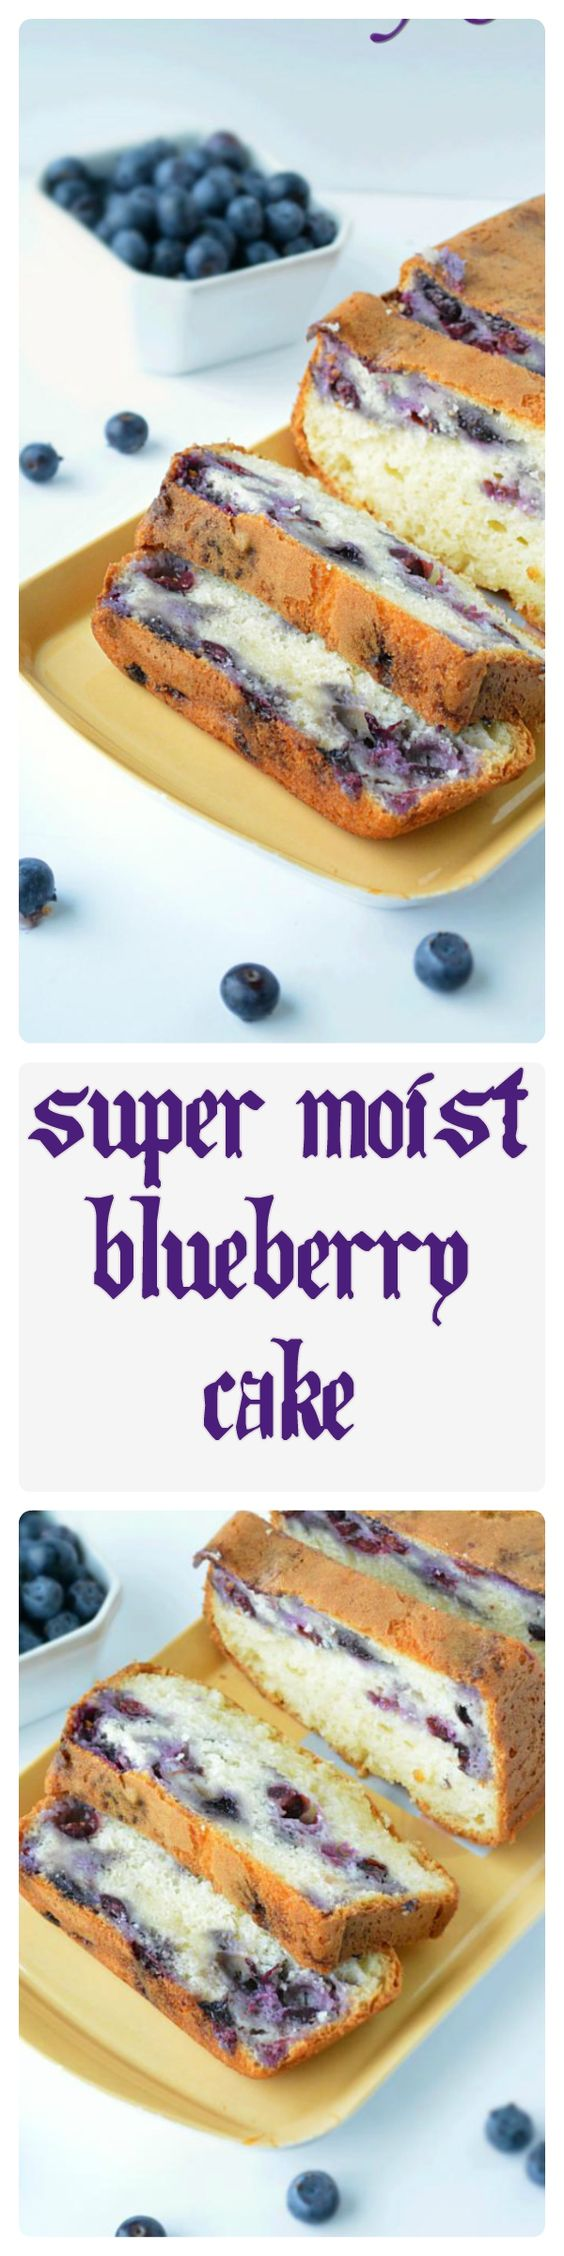 A super moist blueberry cake recipe that is loaded with sweetness of fresh blueberries and is bursting with flavor. #blueberry